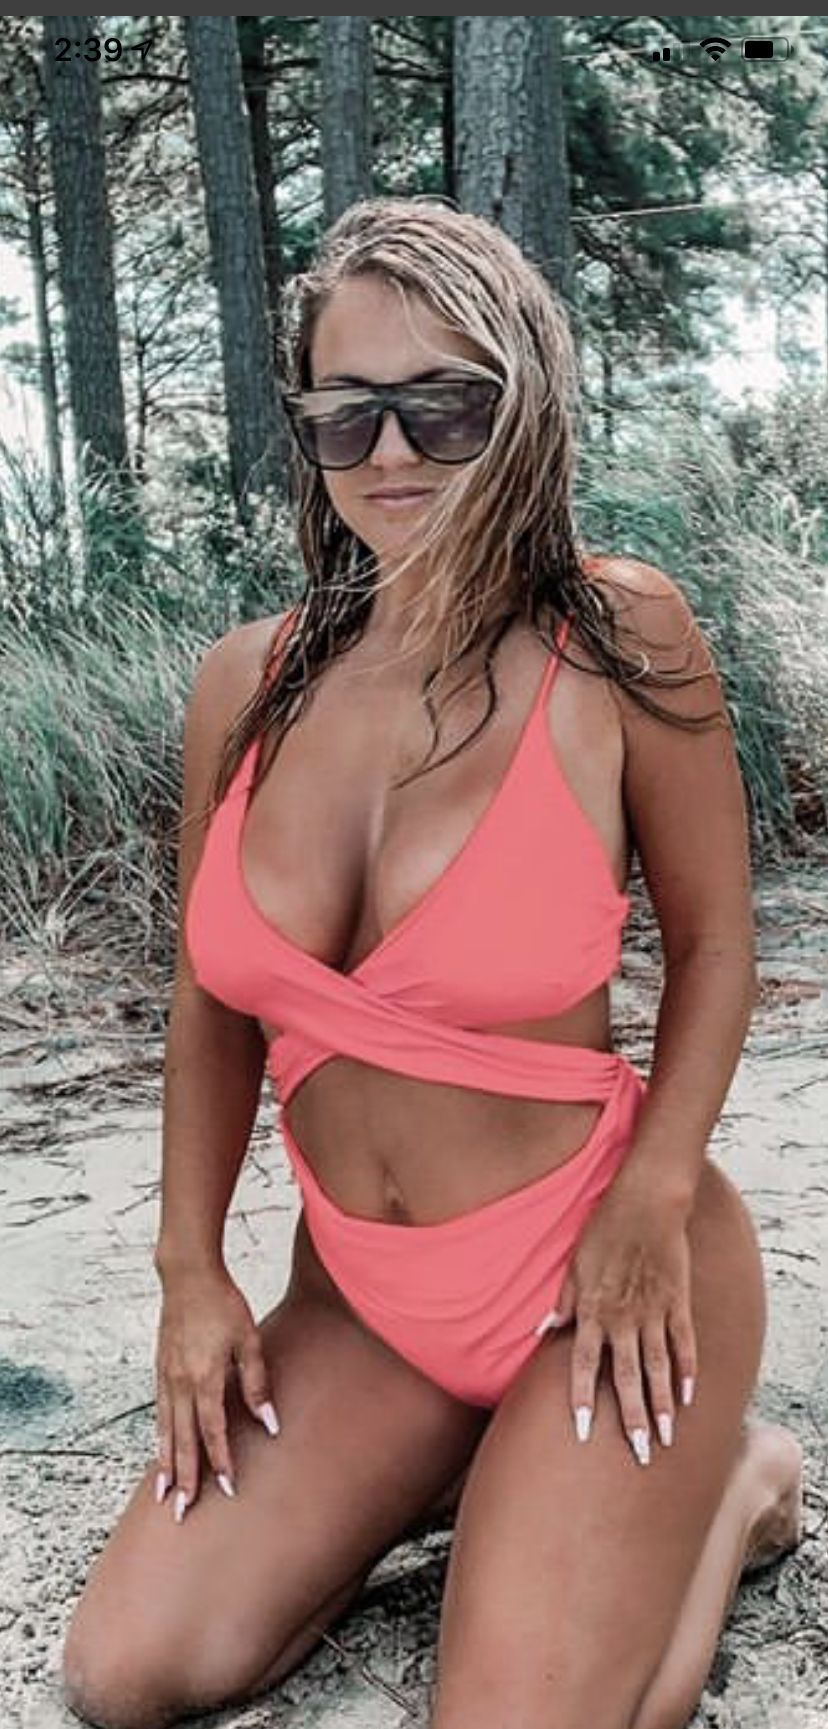 Taylor Wright Lilbitsouth Onlyfans Leaked Nudes 0007